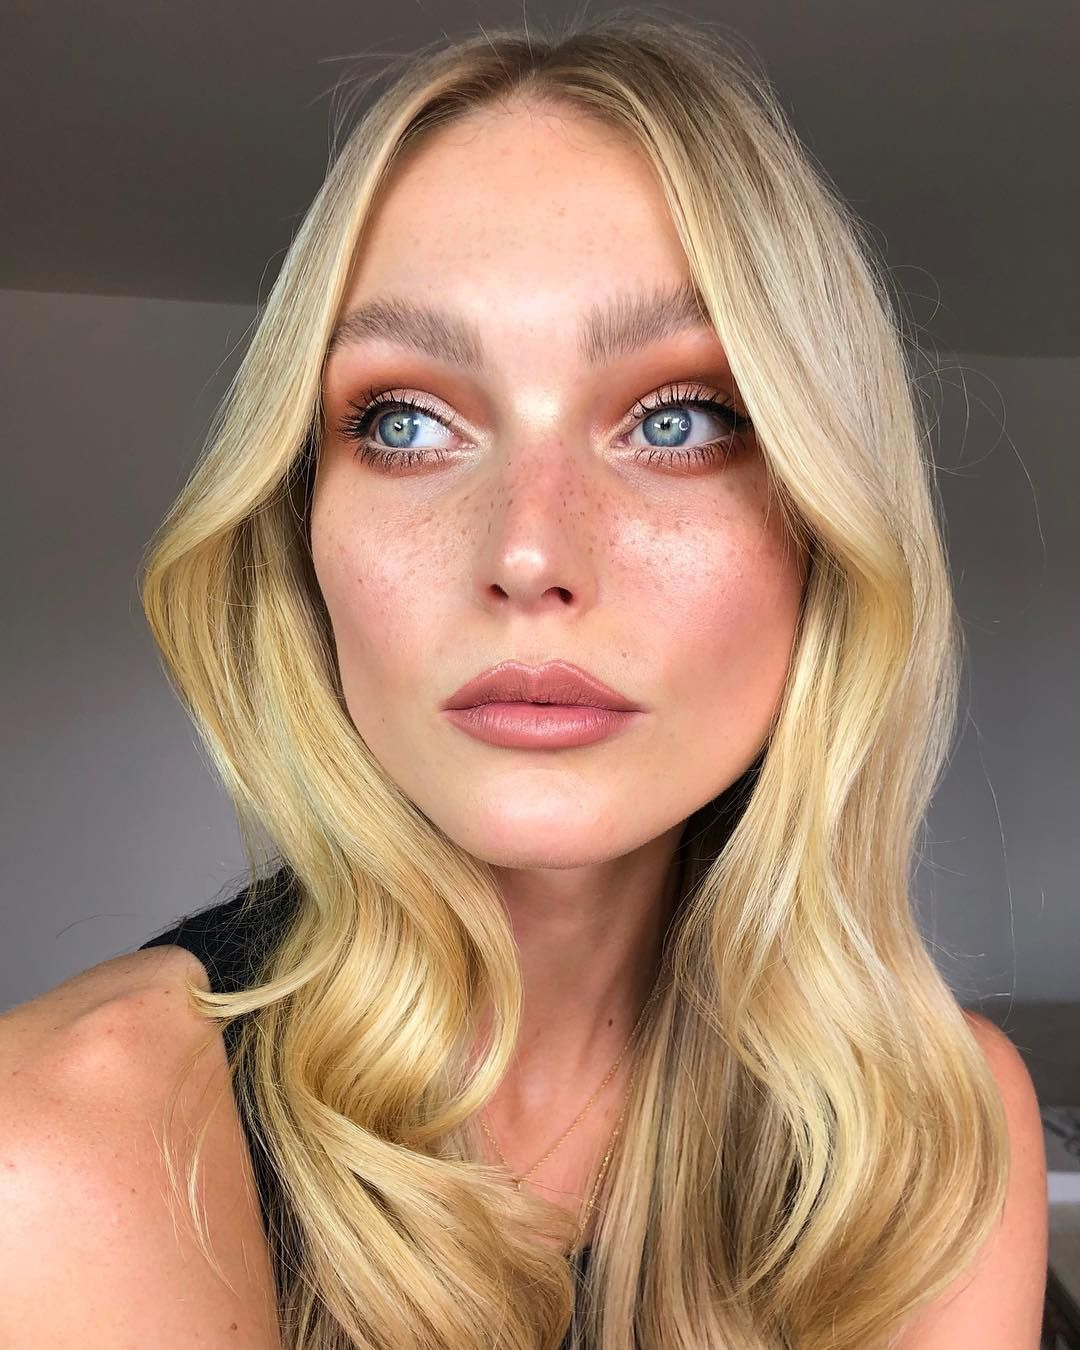 5 Easy Tricks I Learnt for Glowing Skin, Bigger Brows and